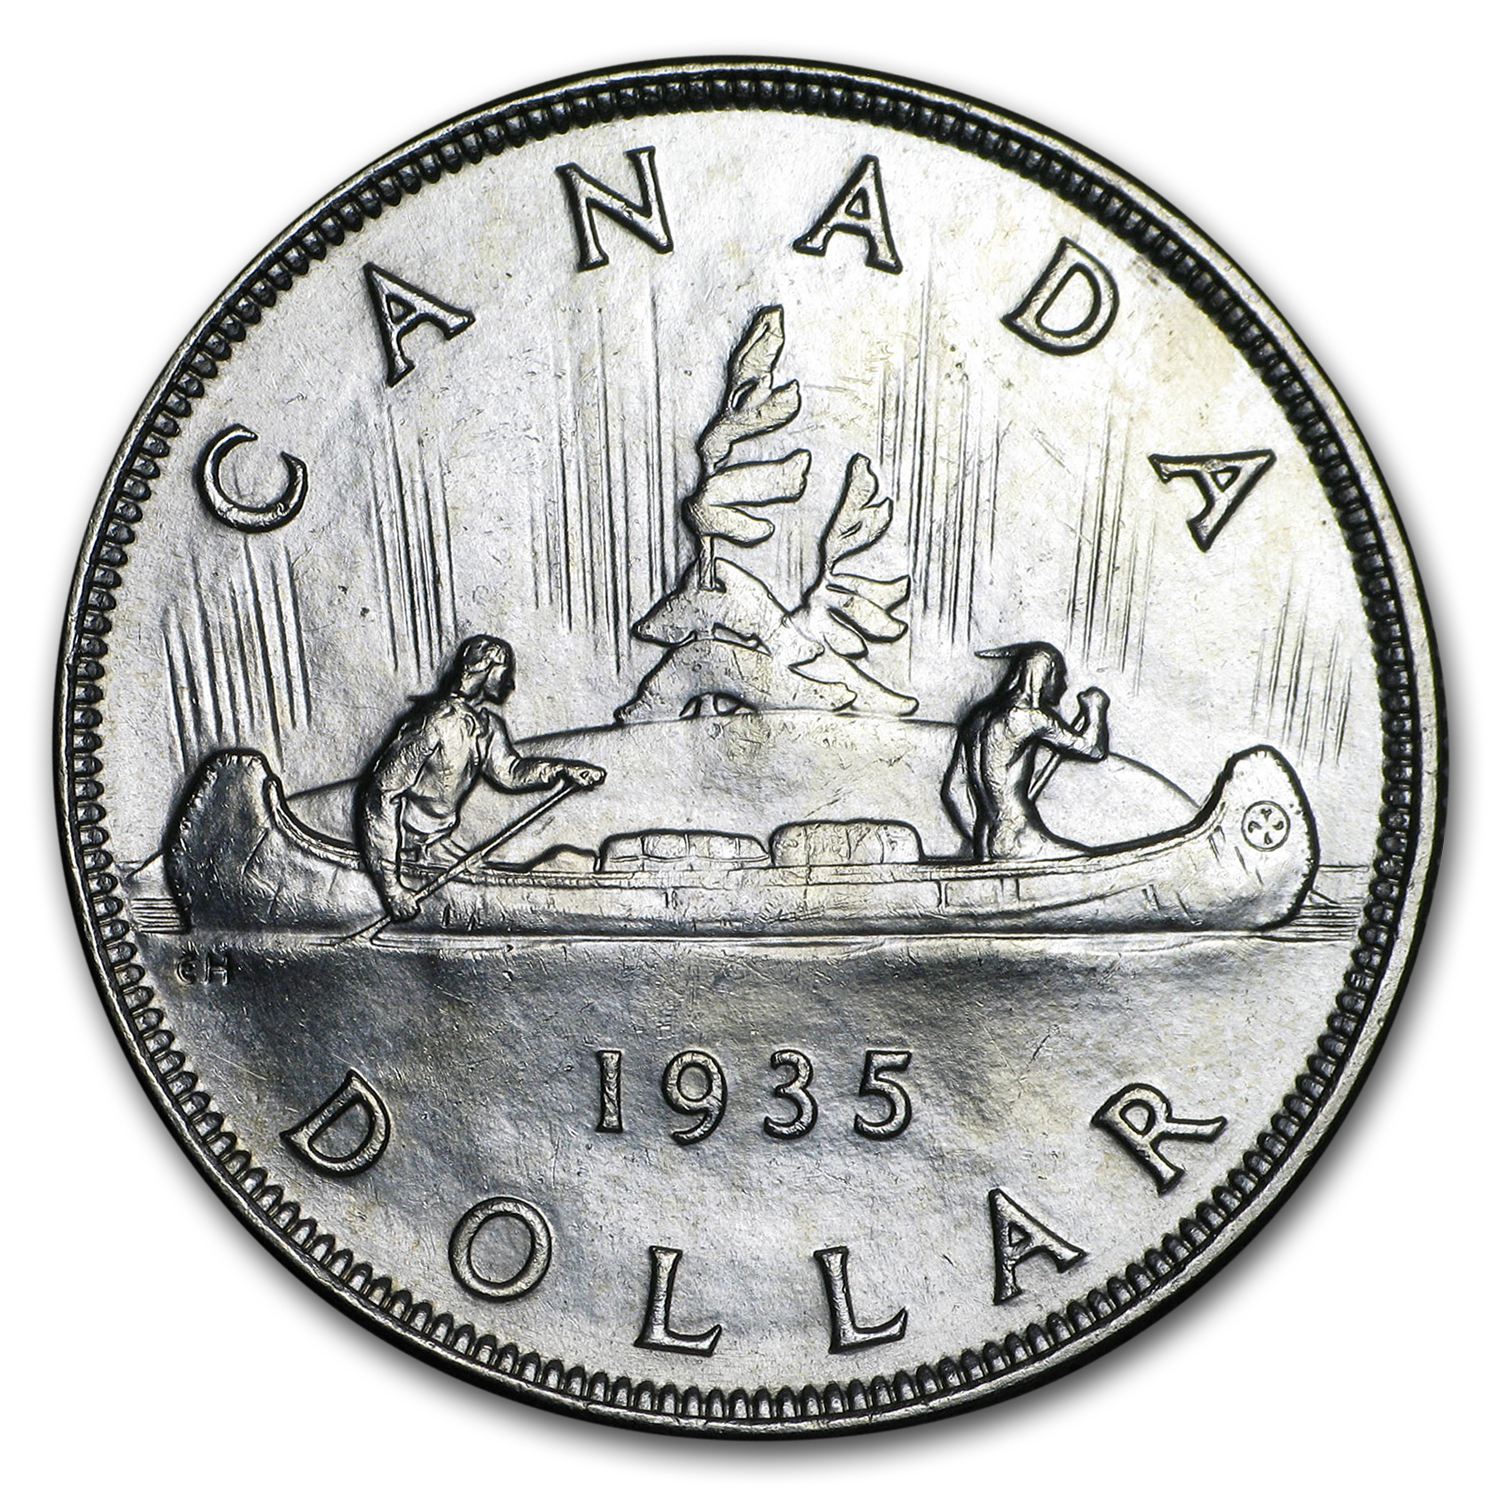 The Reverse of the 1935 Canadian Silver Dollar